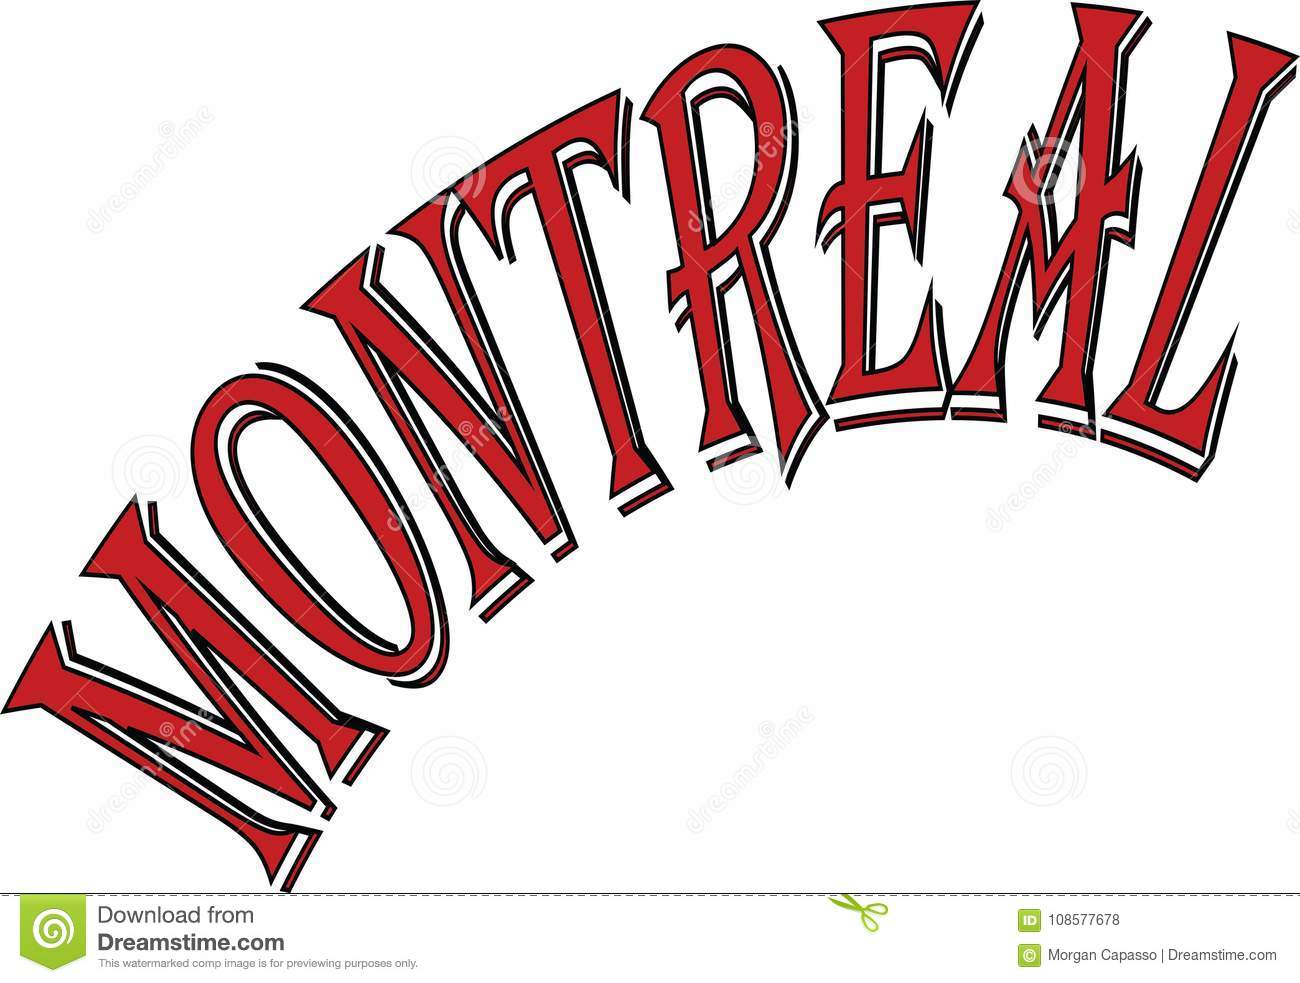 Download Montreal Text Sign Illustration Stock Vector - Illustration of downtown, modern: 108577678